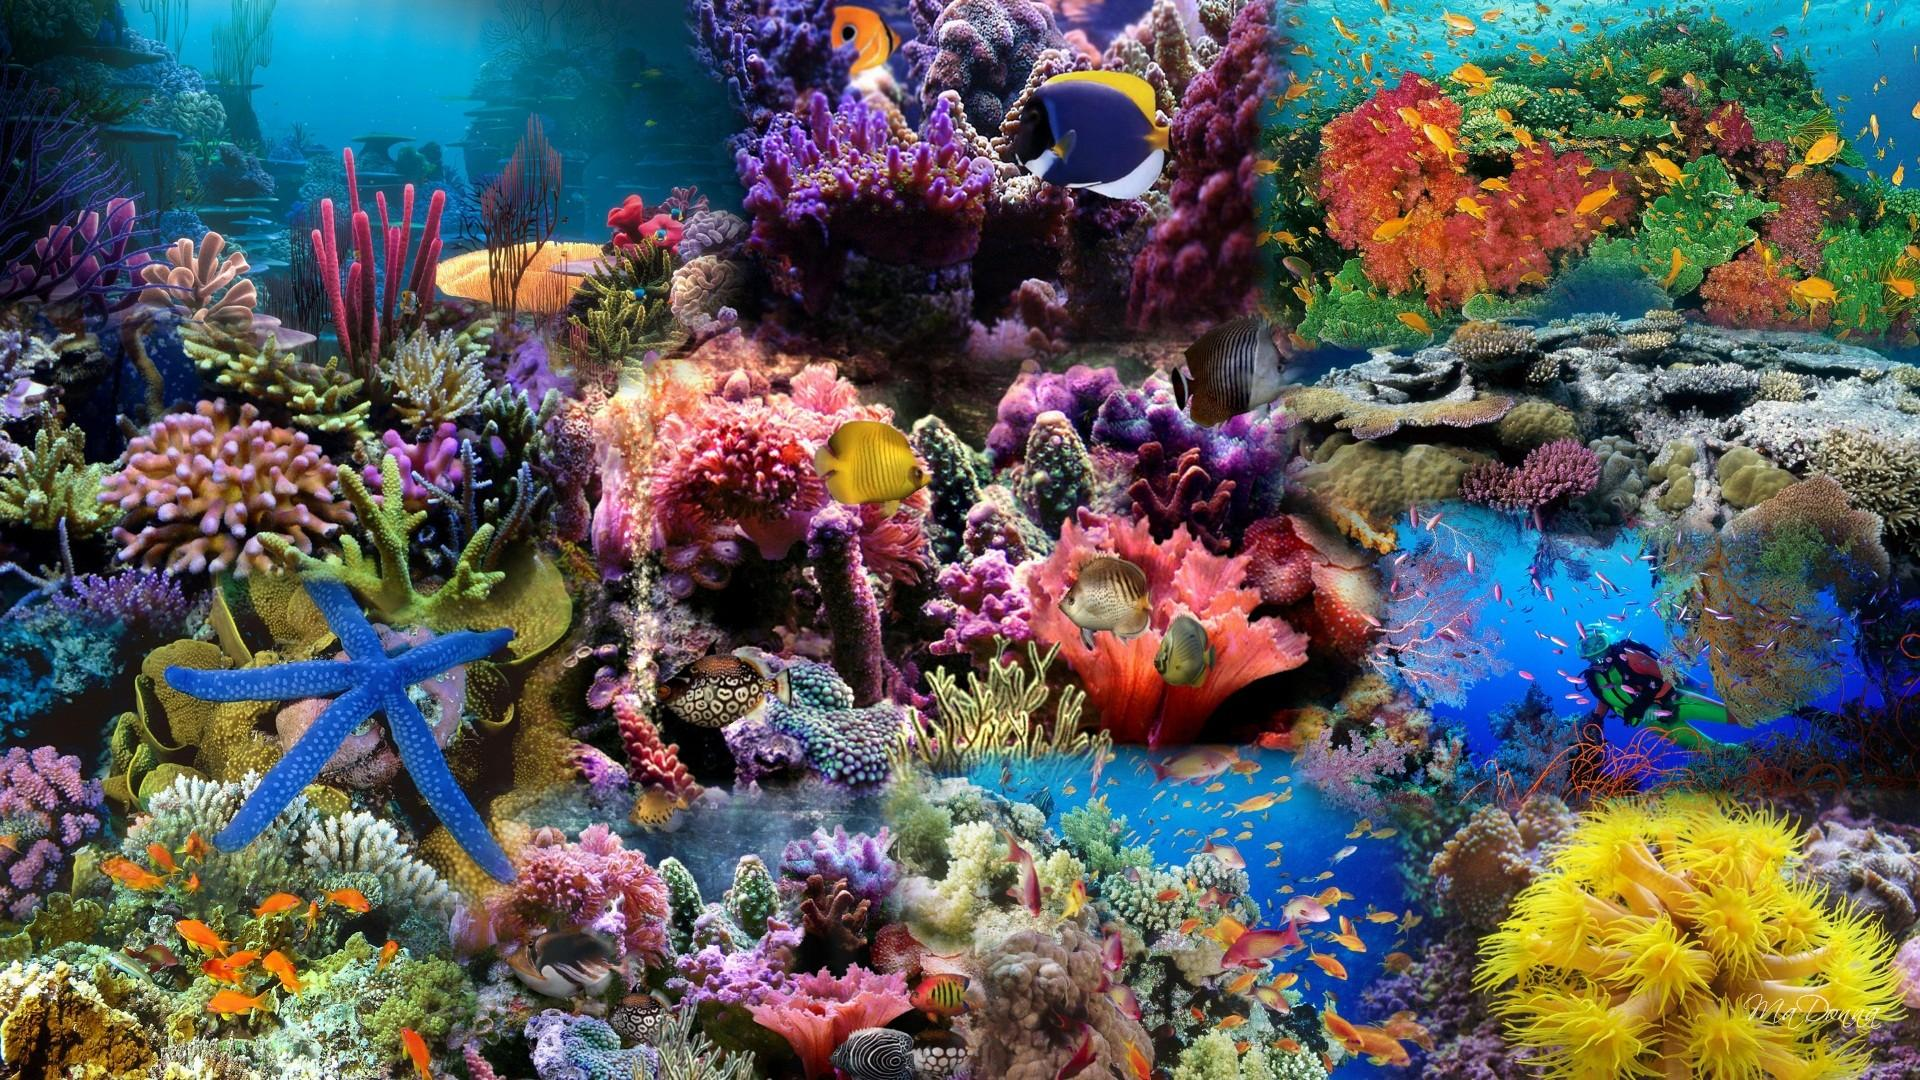 Coral Reef Wallpaper   HD Wallpapers 1920x1080